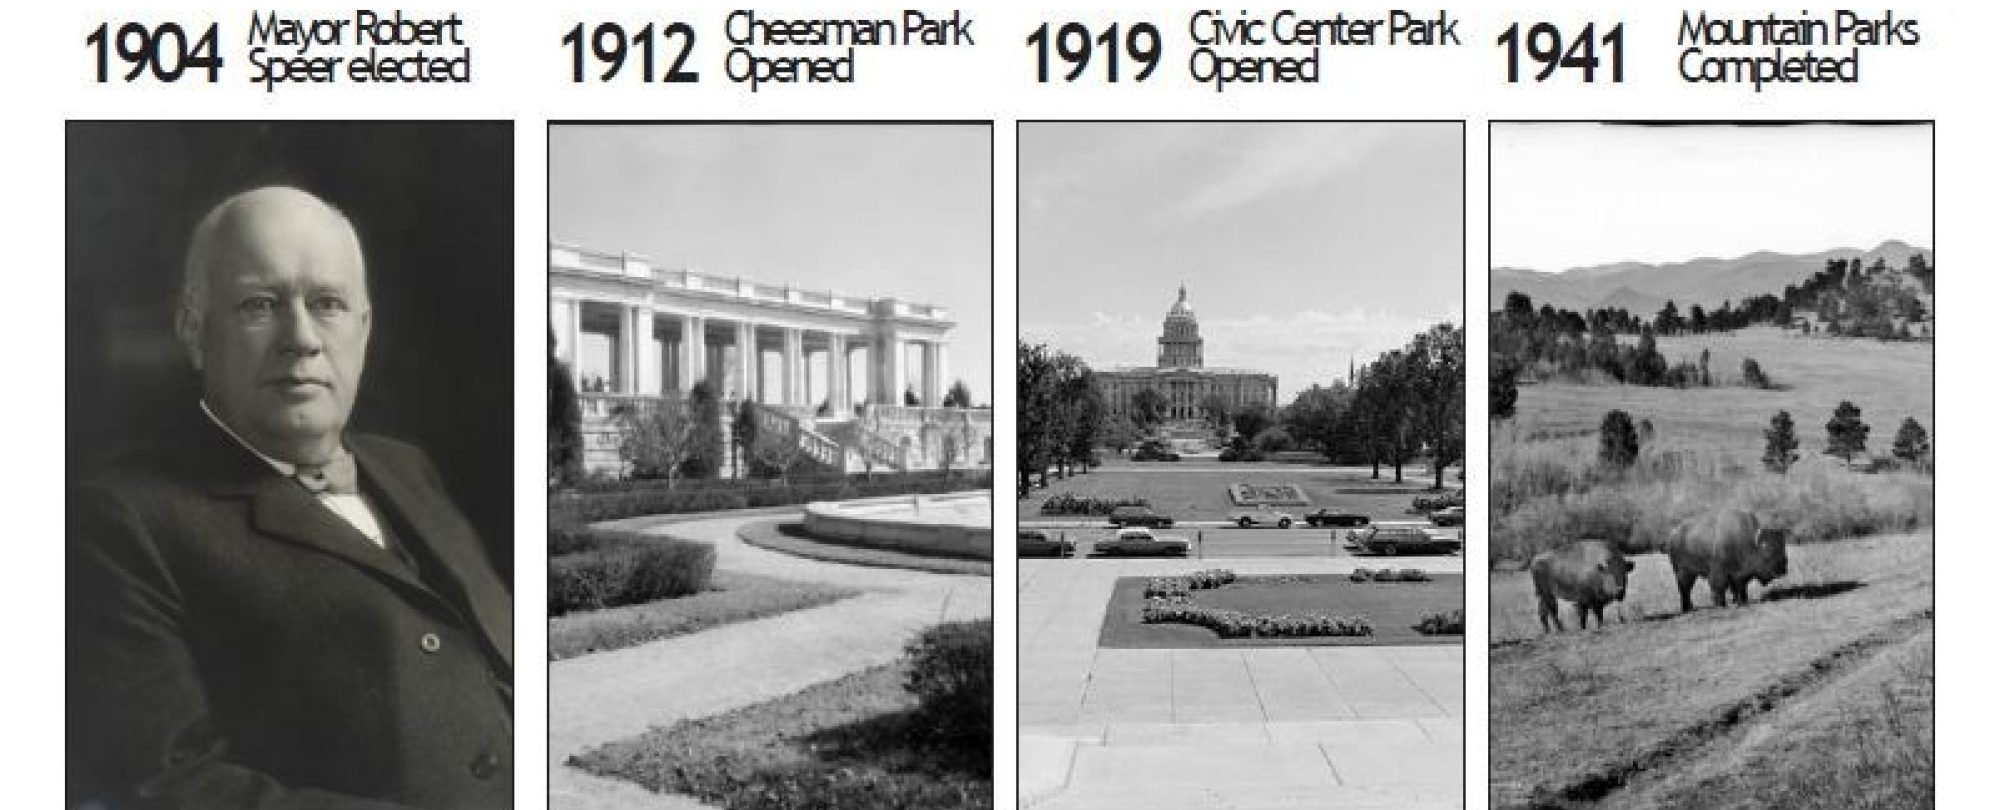 historical timeline of Denver's park system and the City Beautiful movement